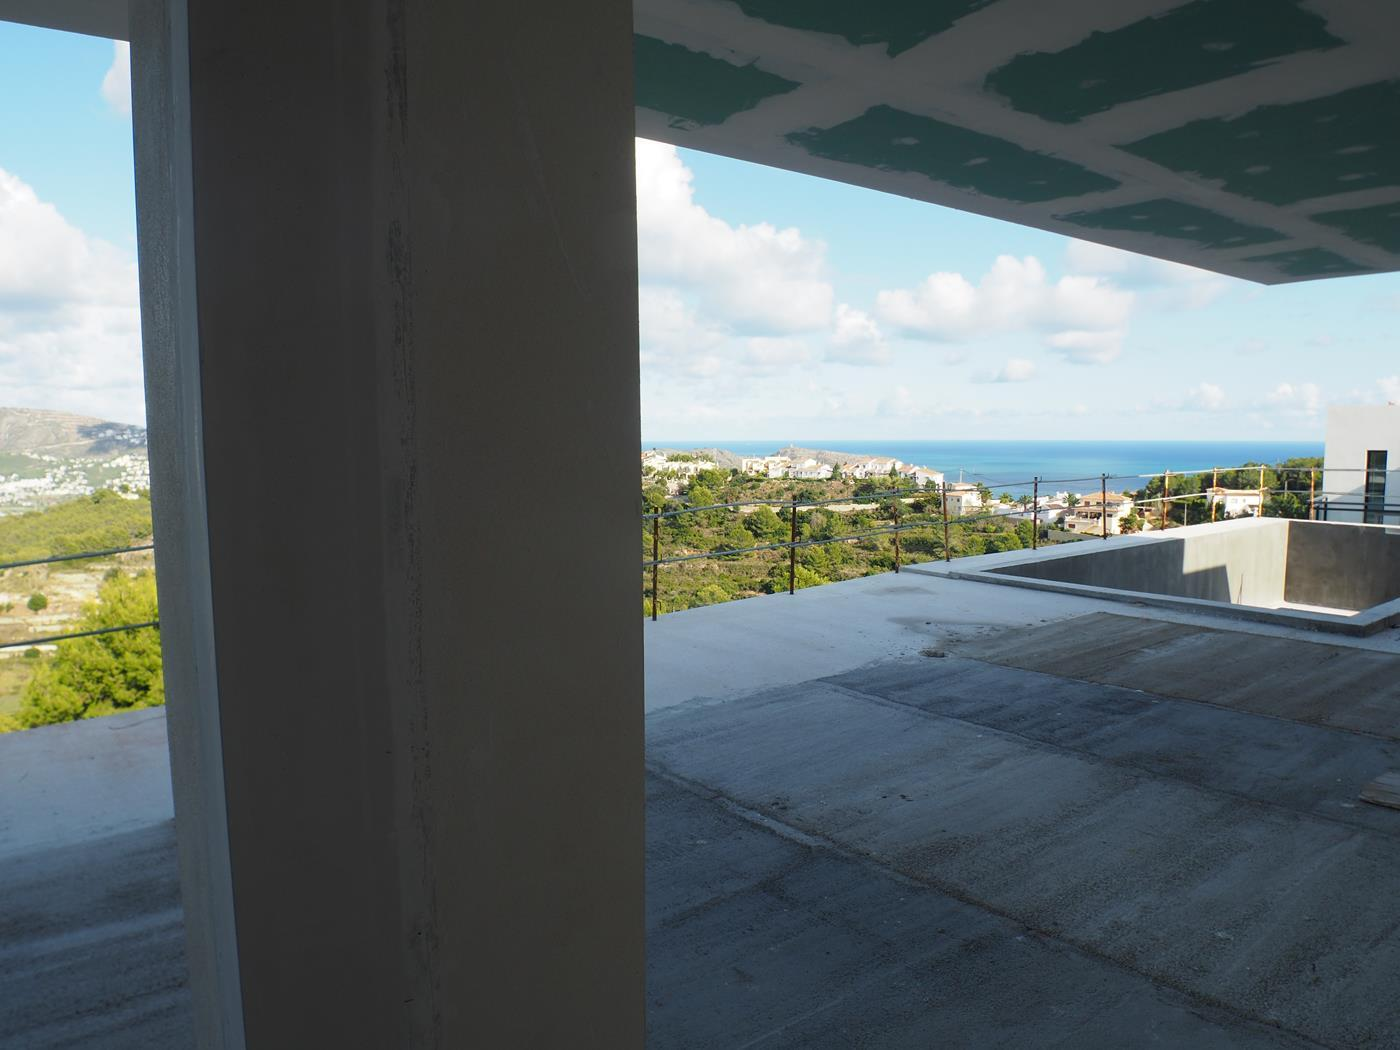 Photogallery - 10 - Exceptional homes in the Costa Blanca. Unparalleled Service. Exceptional properties in the Costa Blanca